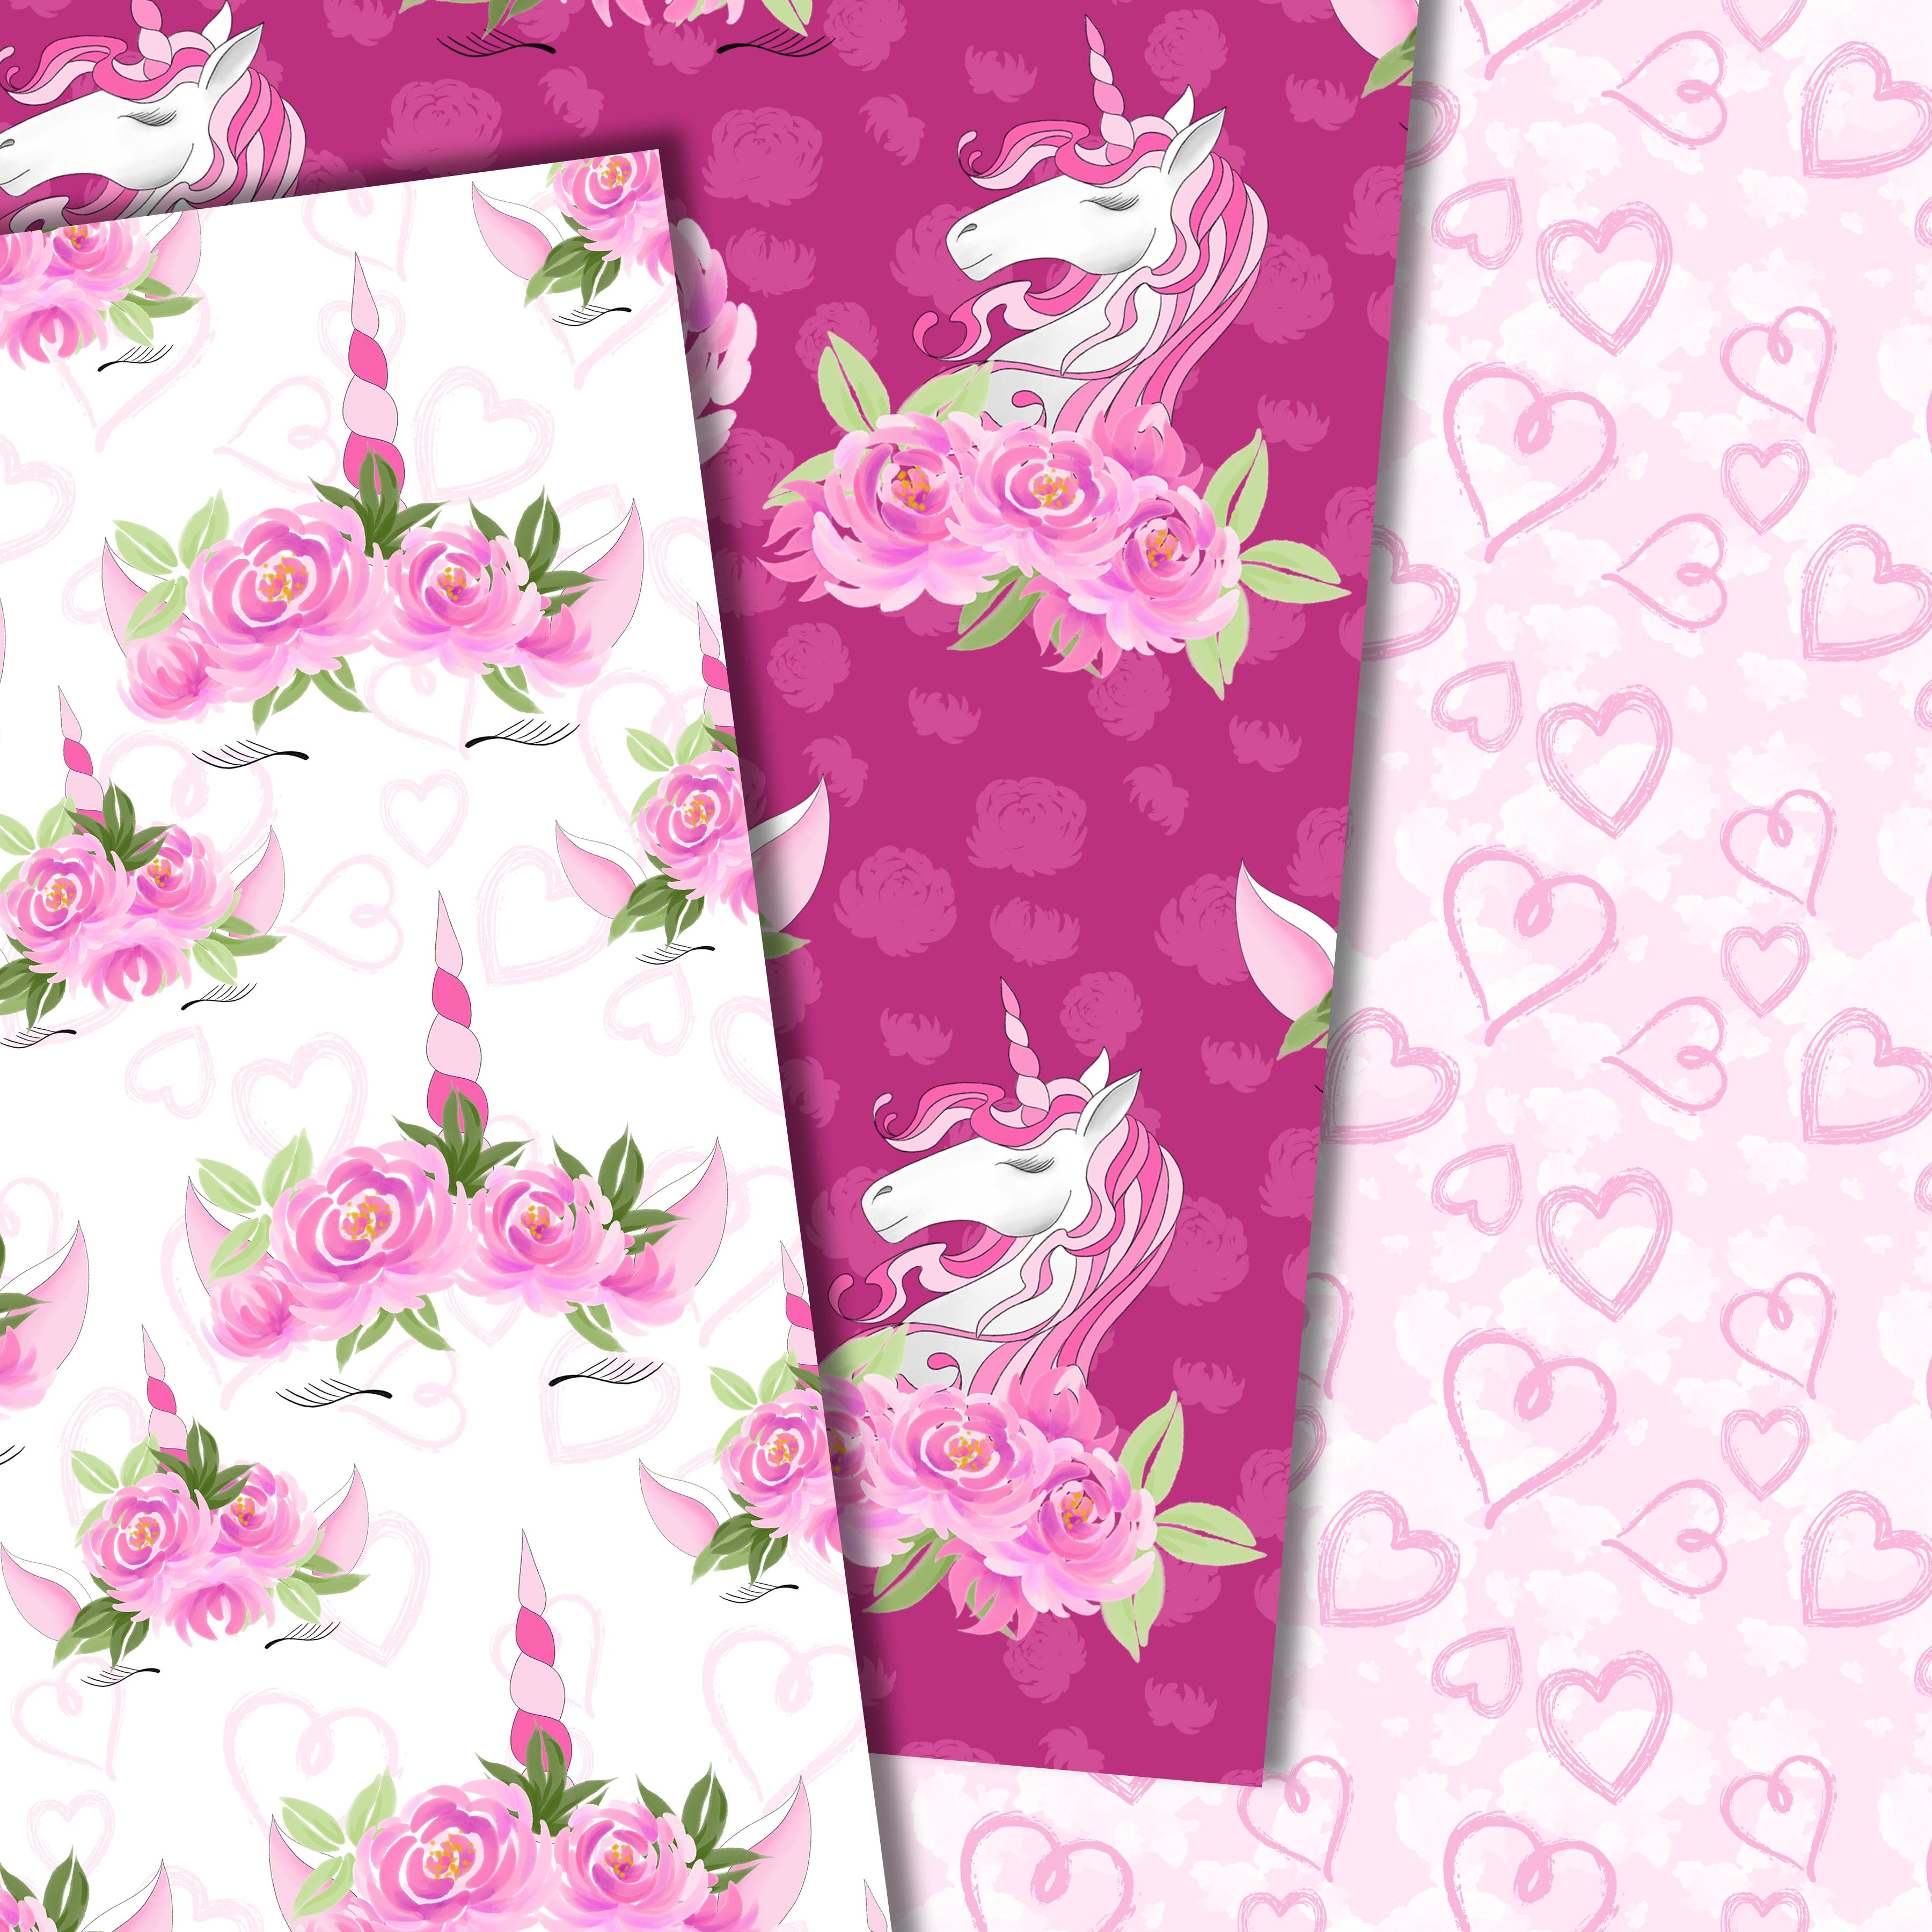 Unicorns and flowers in pink example image 2